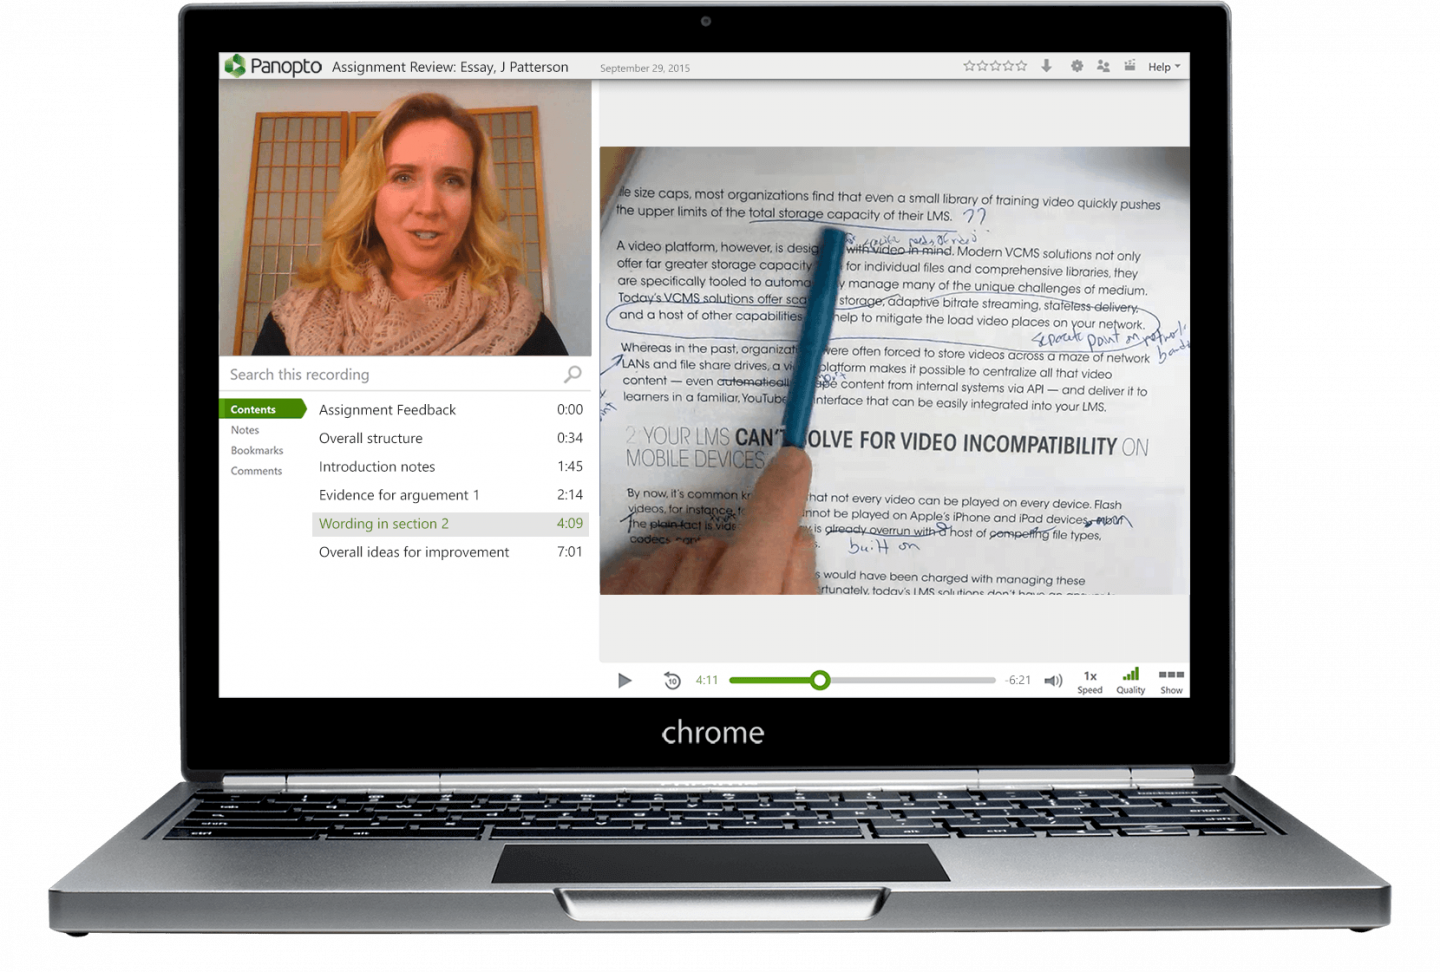 Panopto's K-12 video platform is an affordable, flexible video learning solution